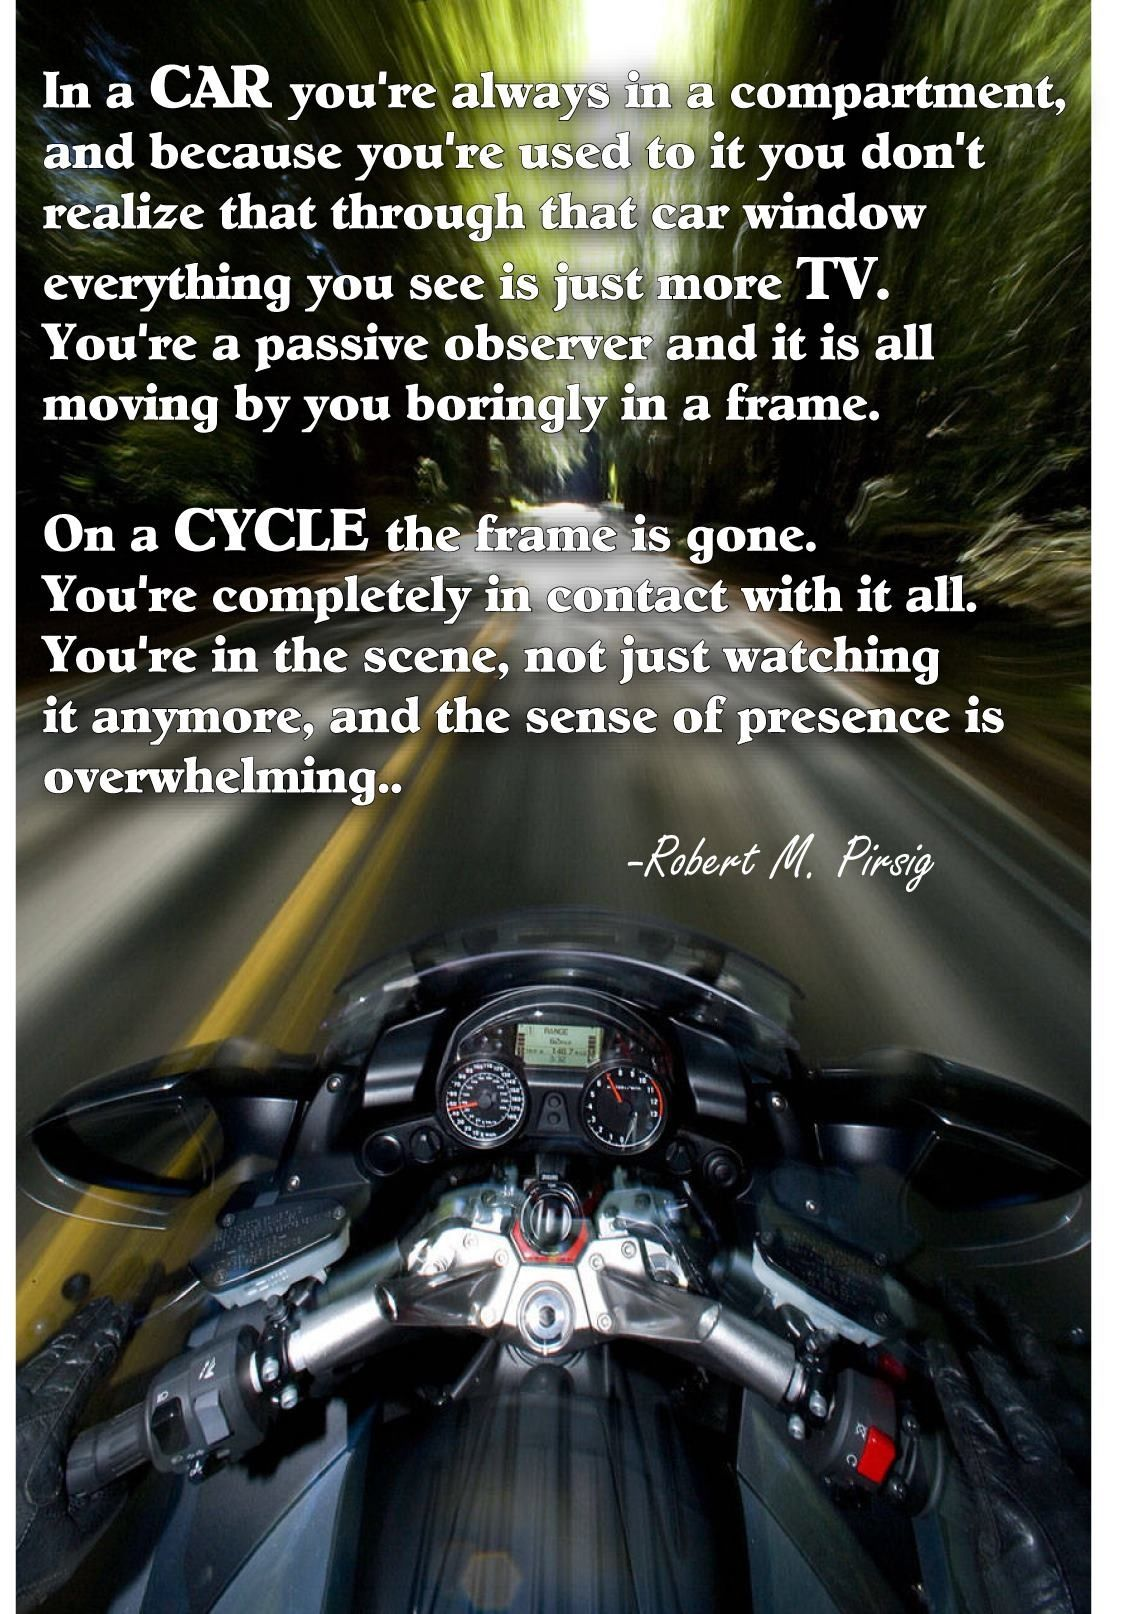 Motorcycle Riding Quotes Quotesgram